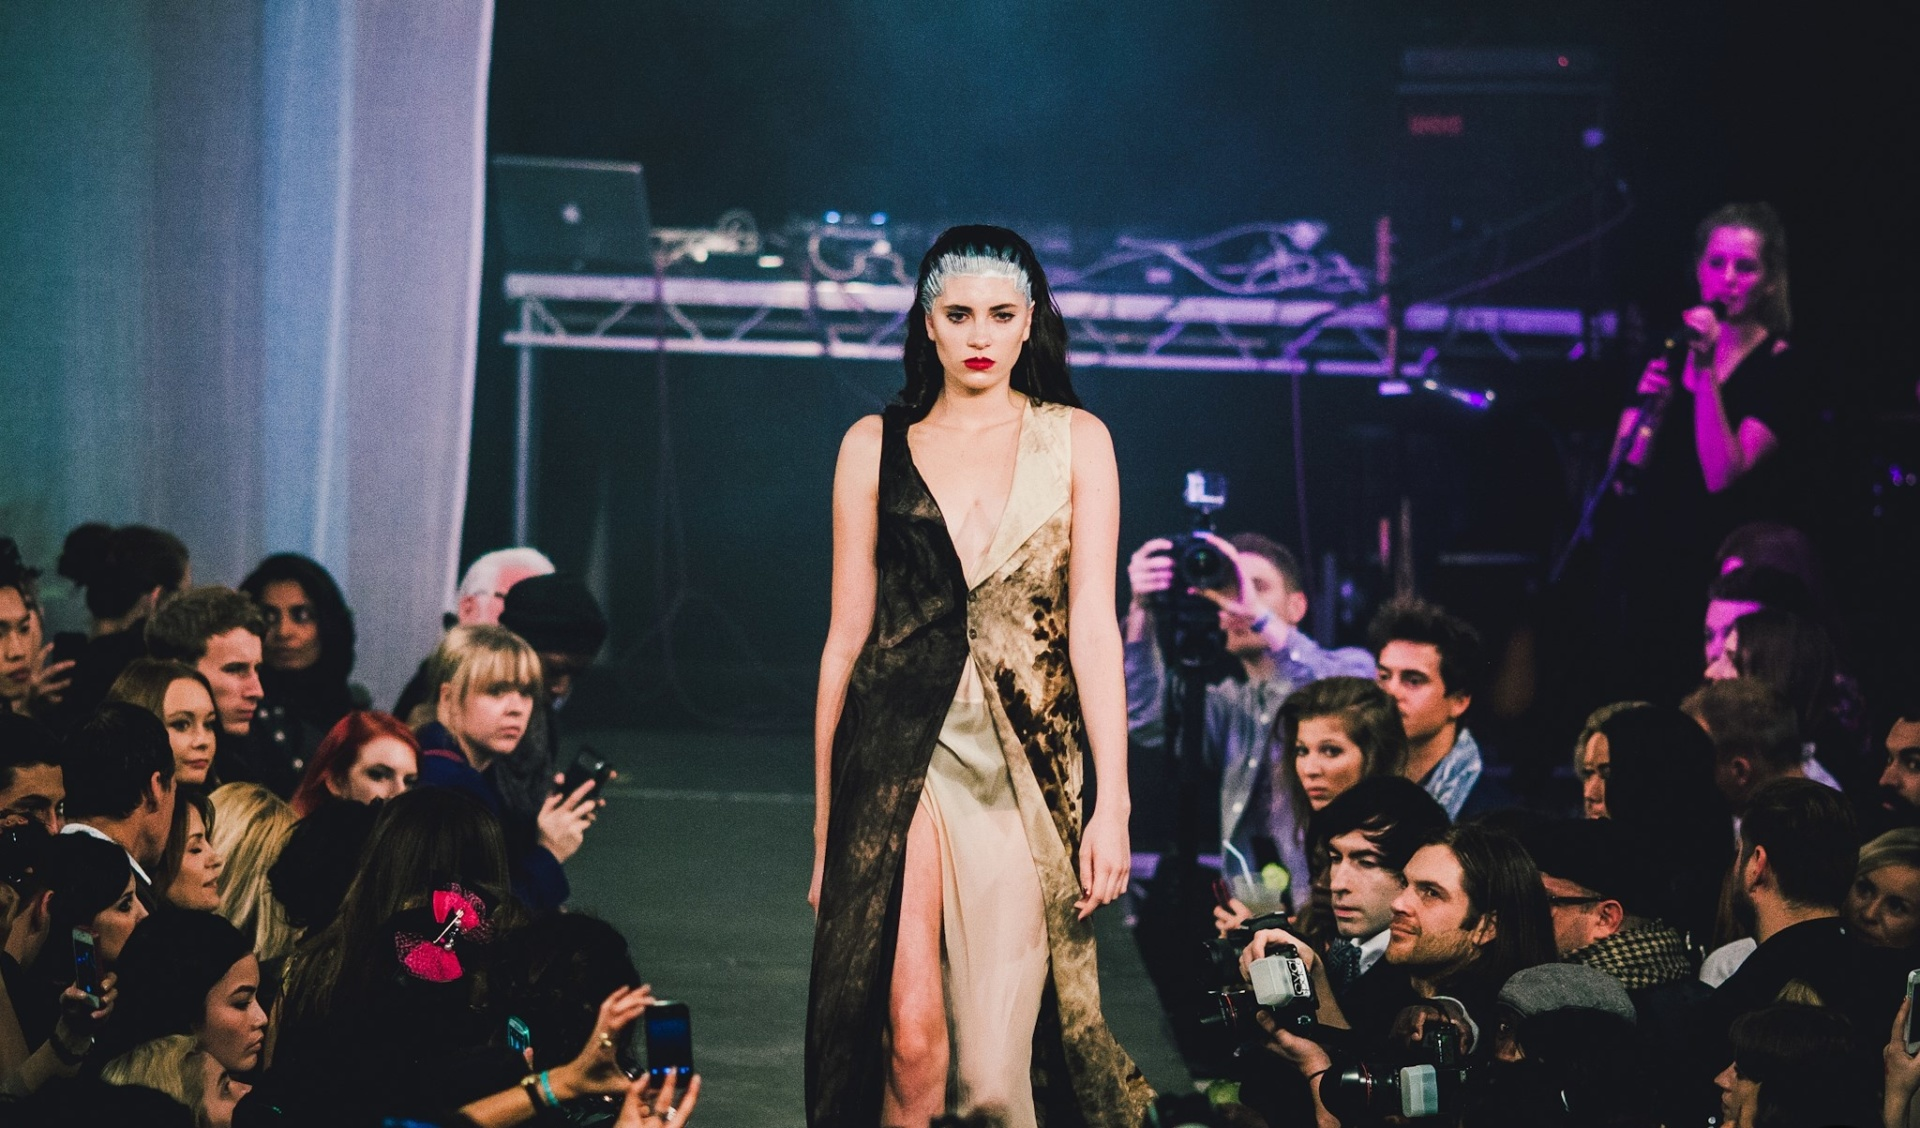 Photograph of the Shoreditch Fashion Show- pictured is a woman in a dress walking down a catwalk. Graphic design by Barefaced Studios, design agency based in Islington, North London.